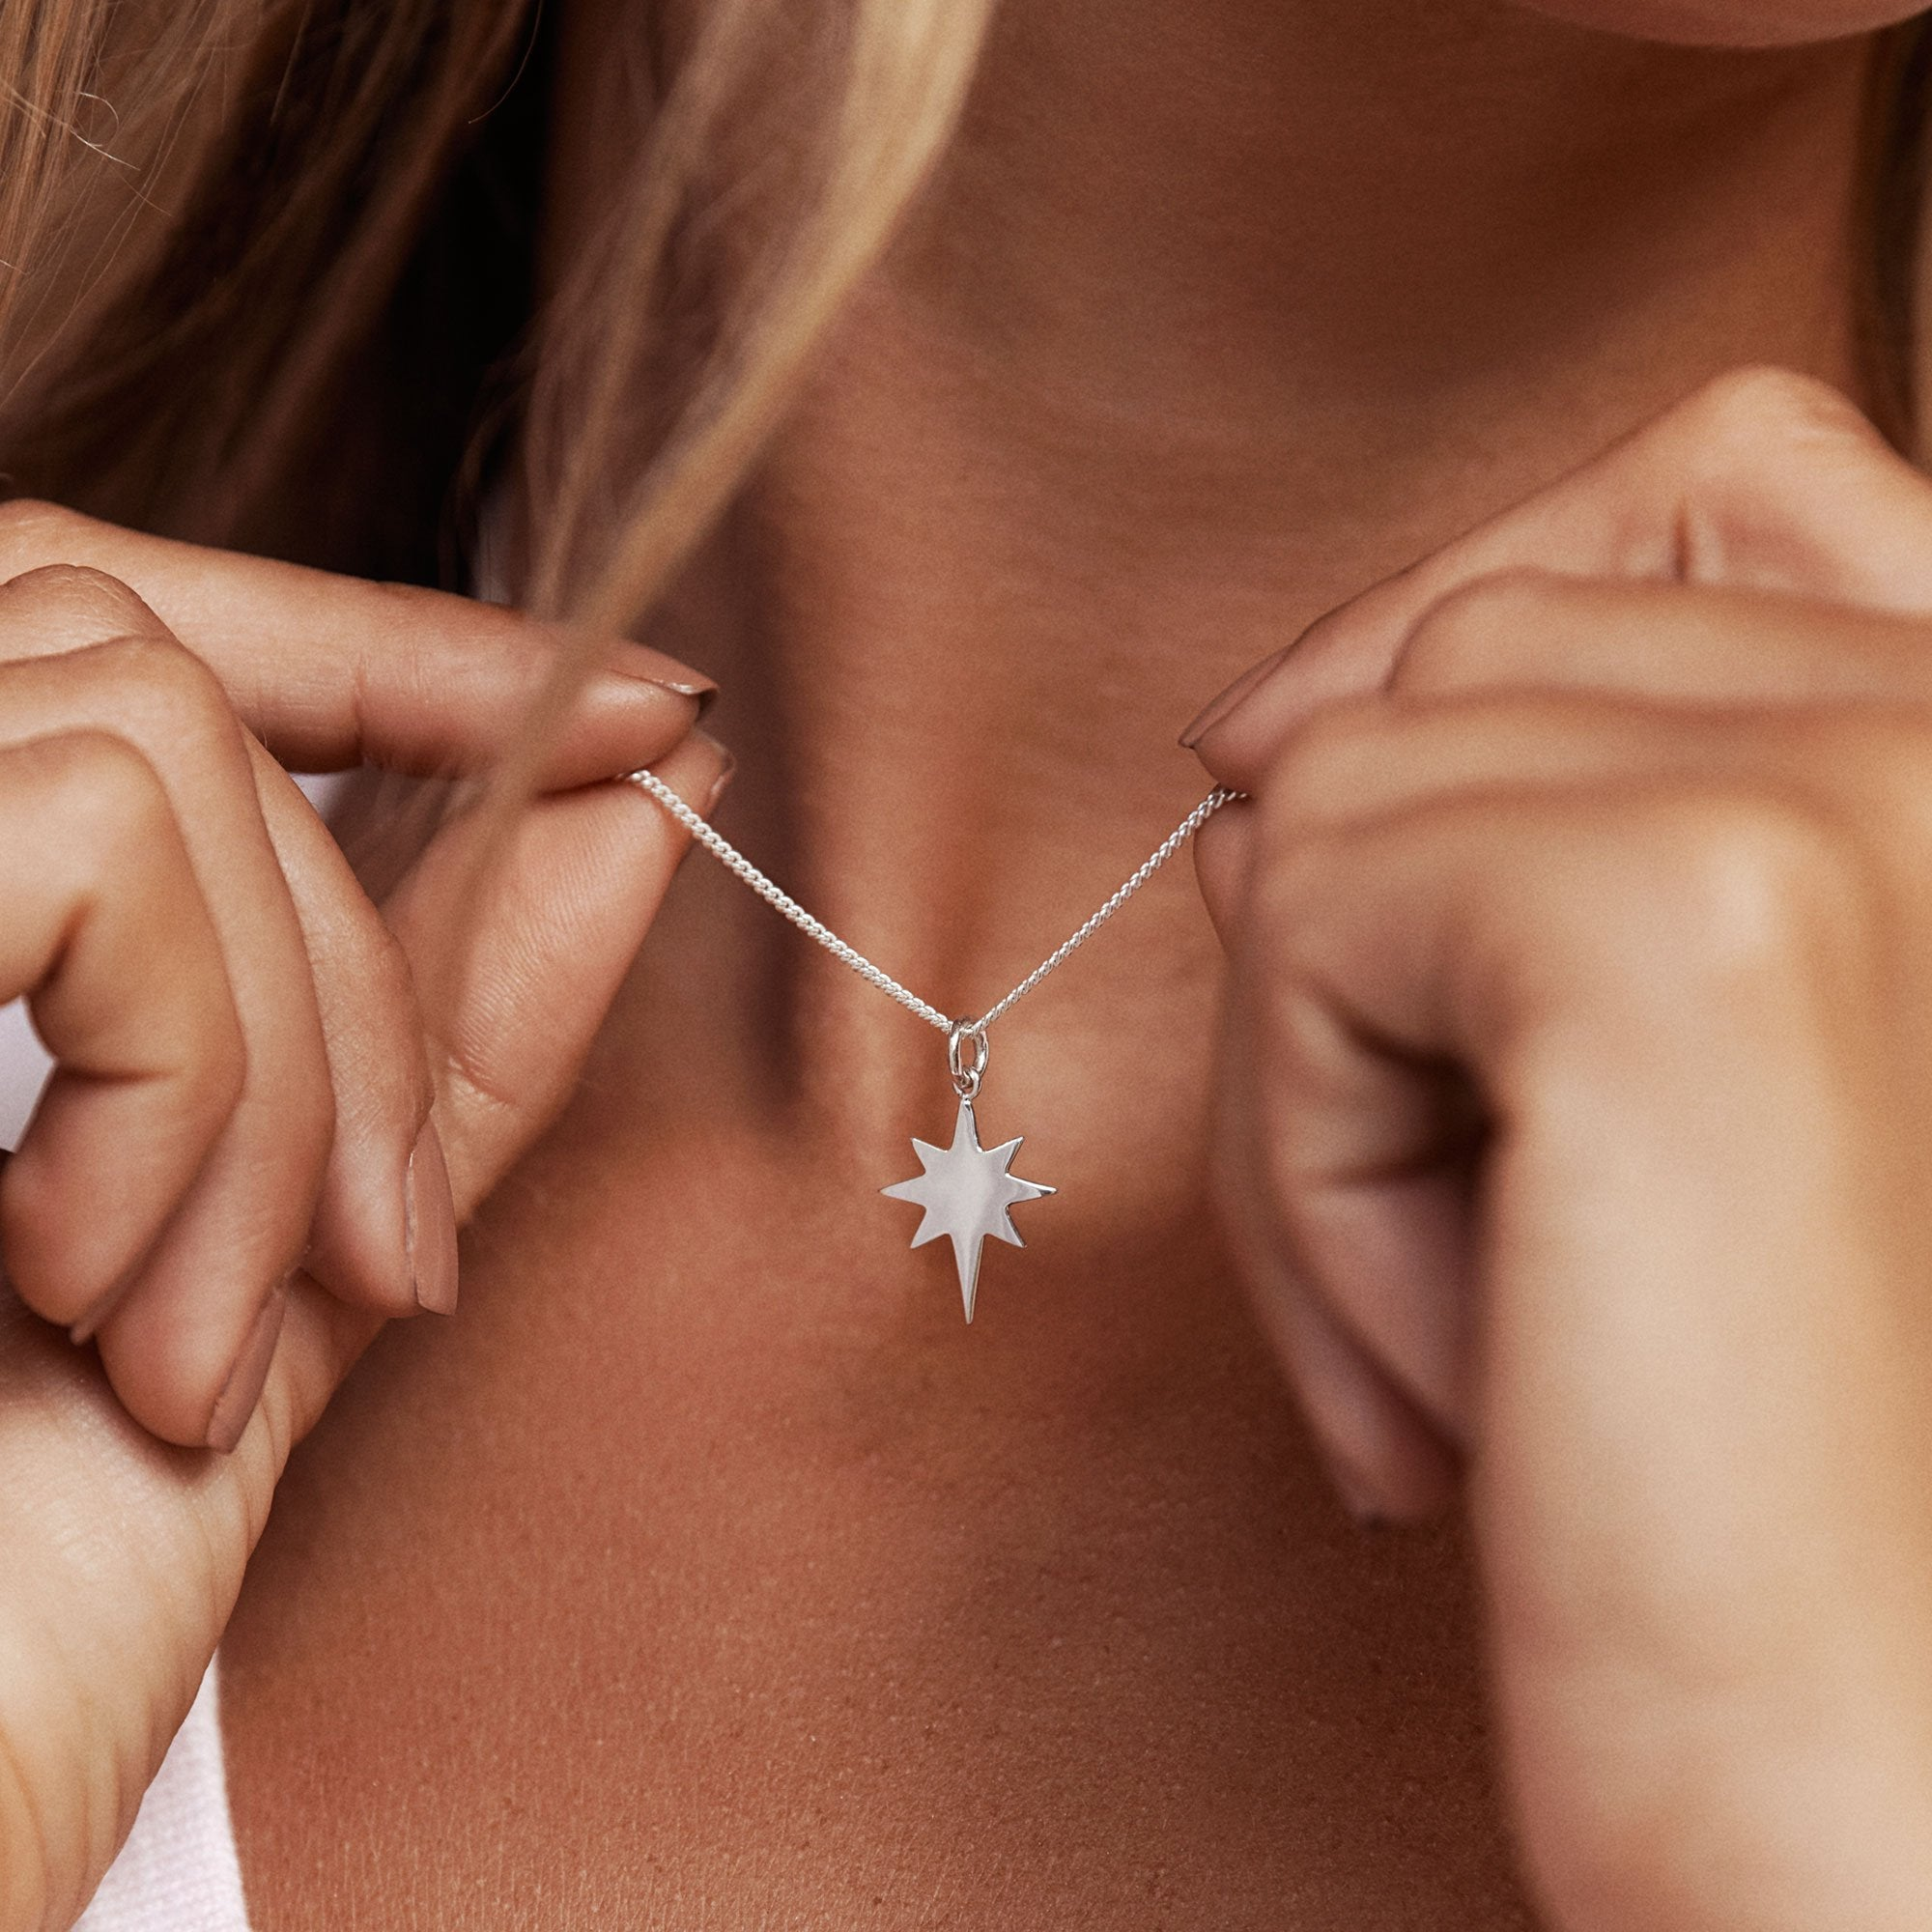 Model wearing 925 sterling silver north star pendant (P2761S1)